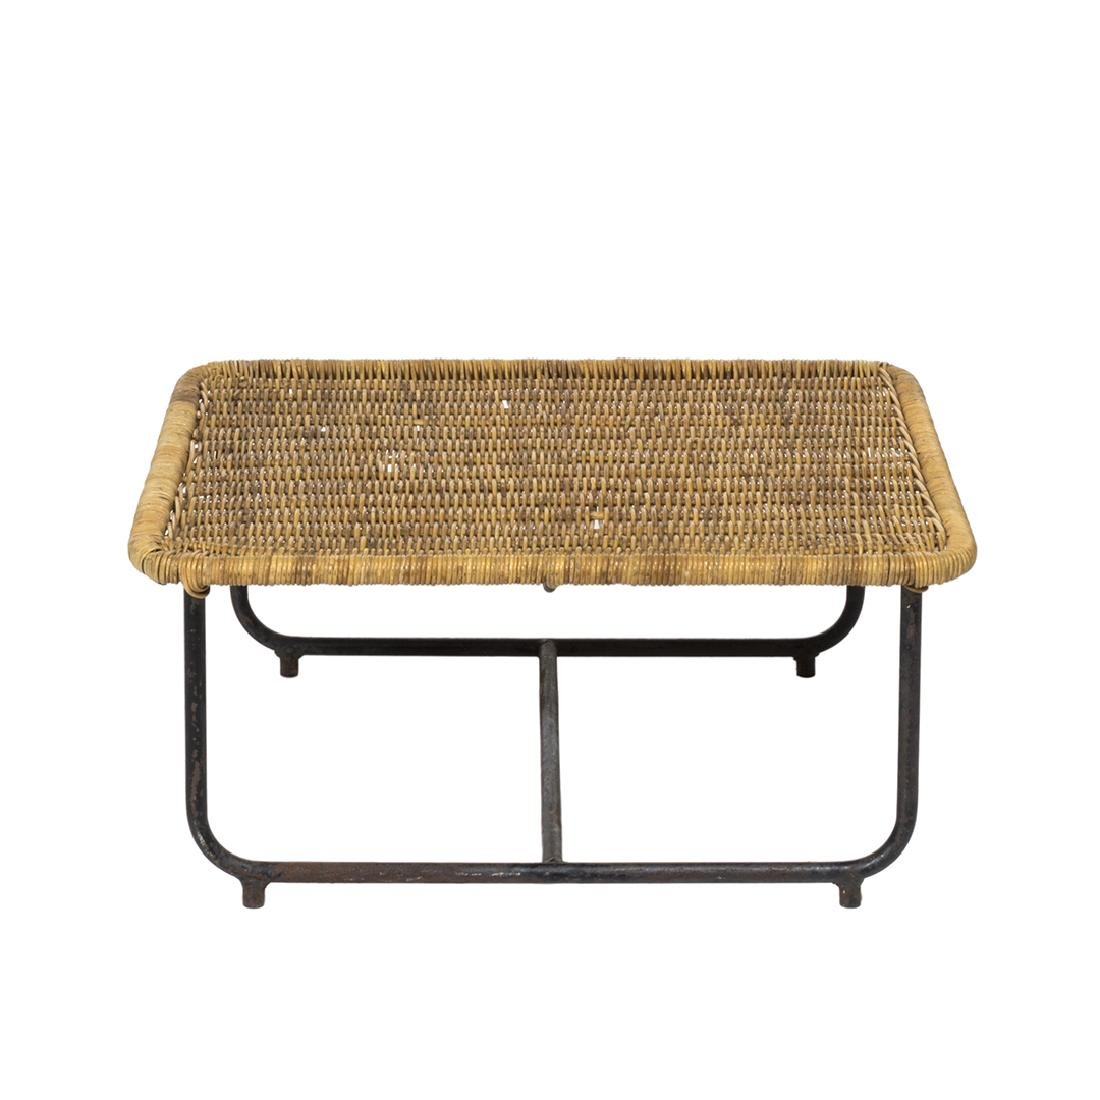 Rattan and Iron Low Table - 2